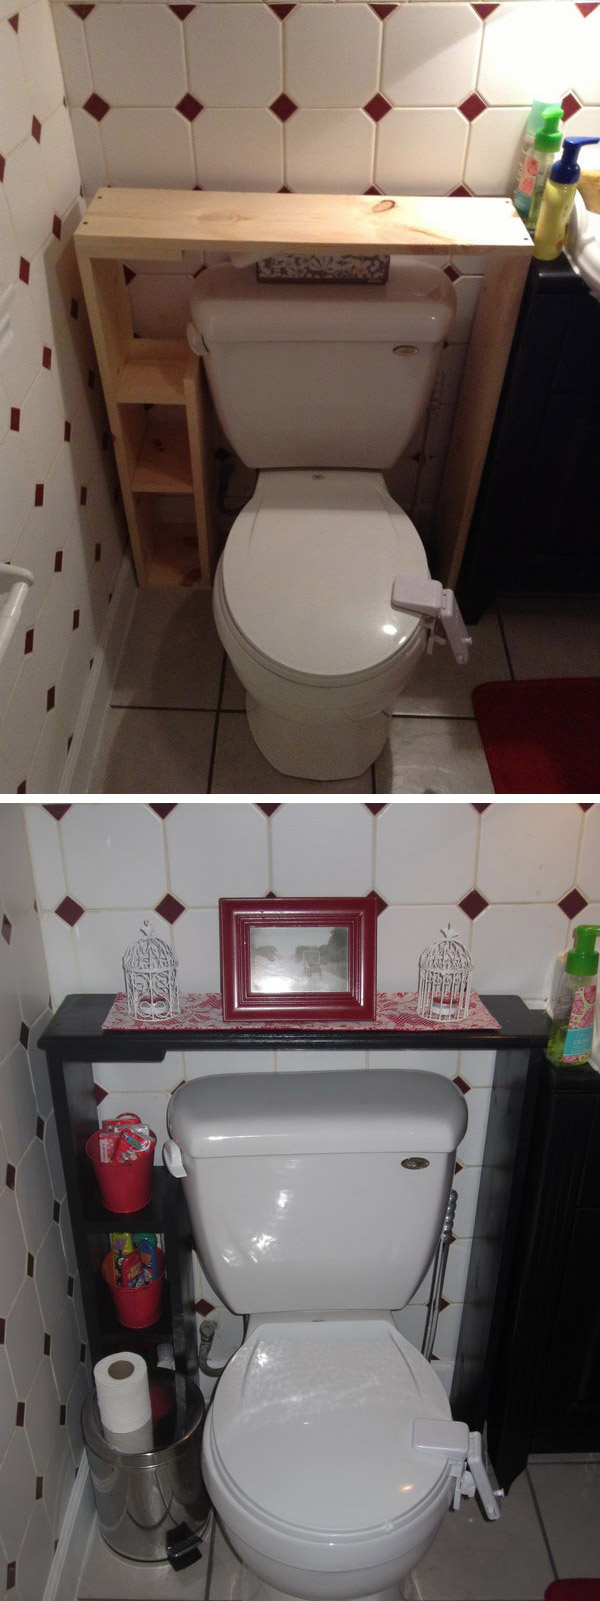 DIY Shelf Over The Toilet For More Storage Space